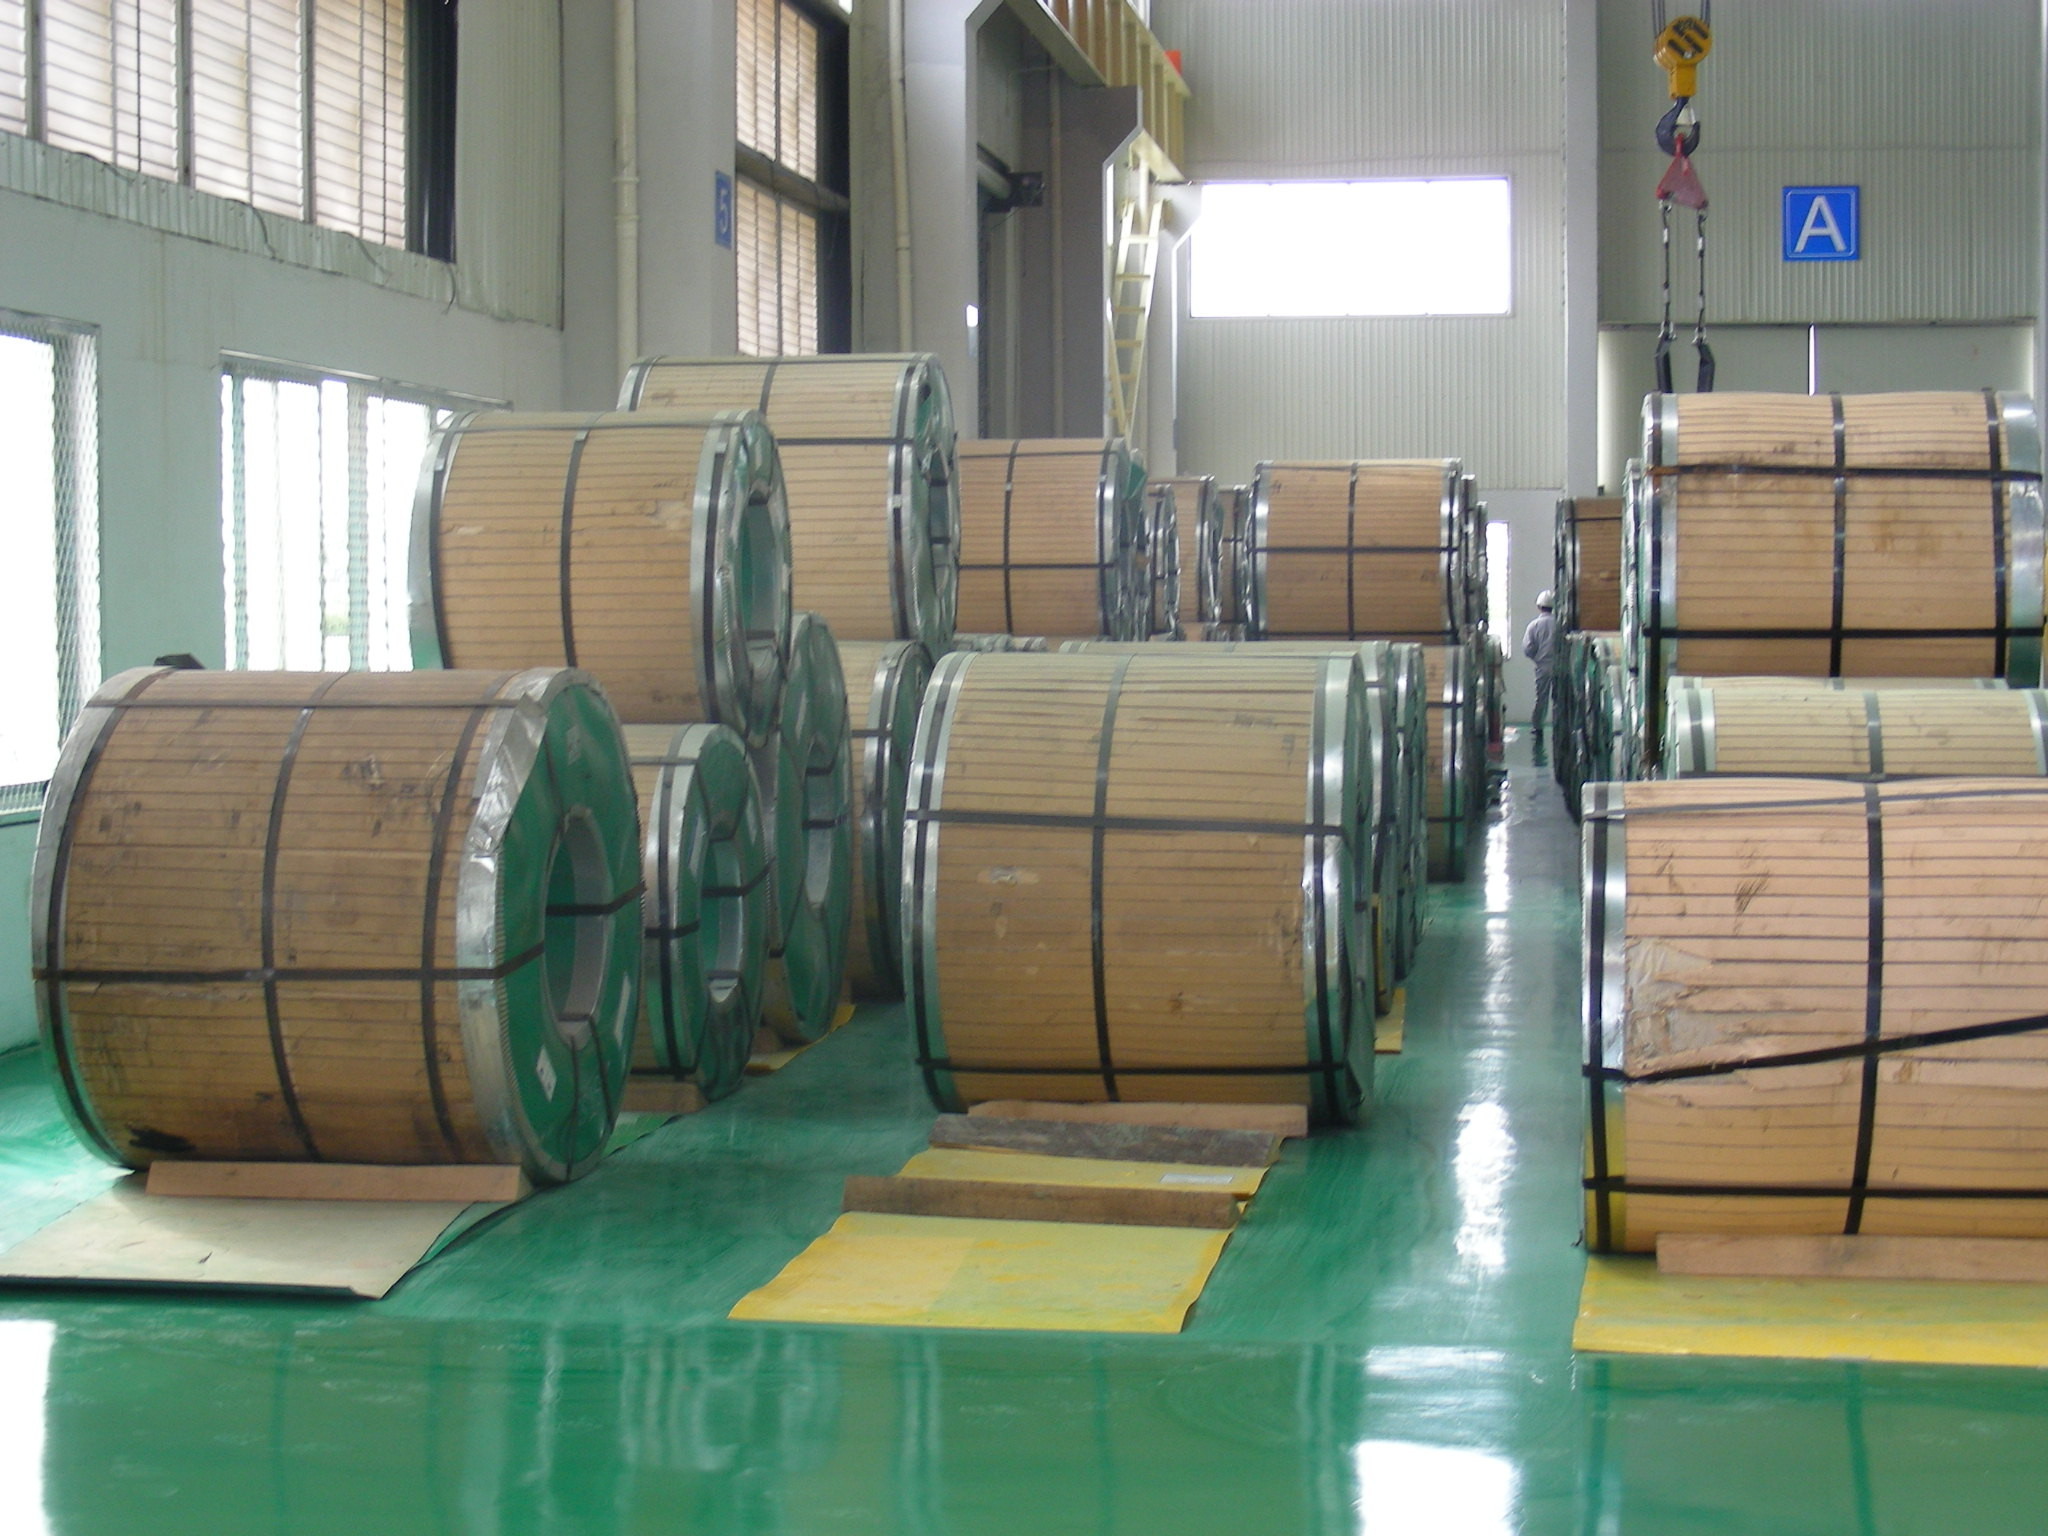 201L1, 430/BA Stainless Steel Sheet Coil, Width of 1219mm, 1500mm